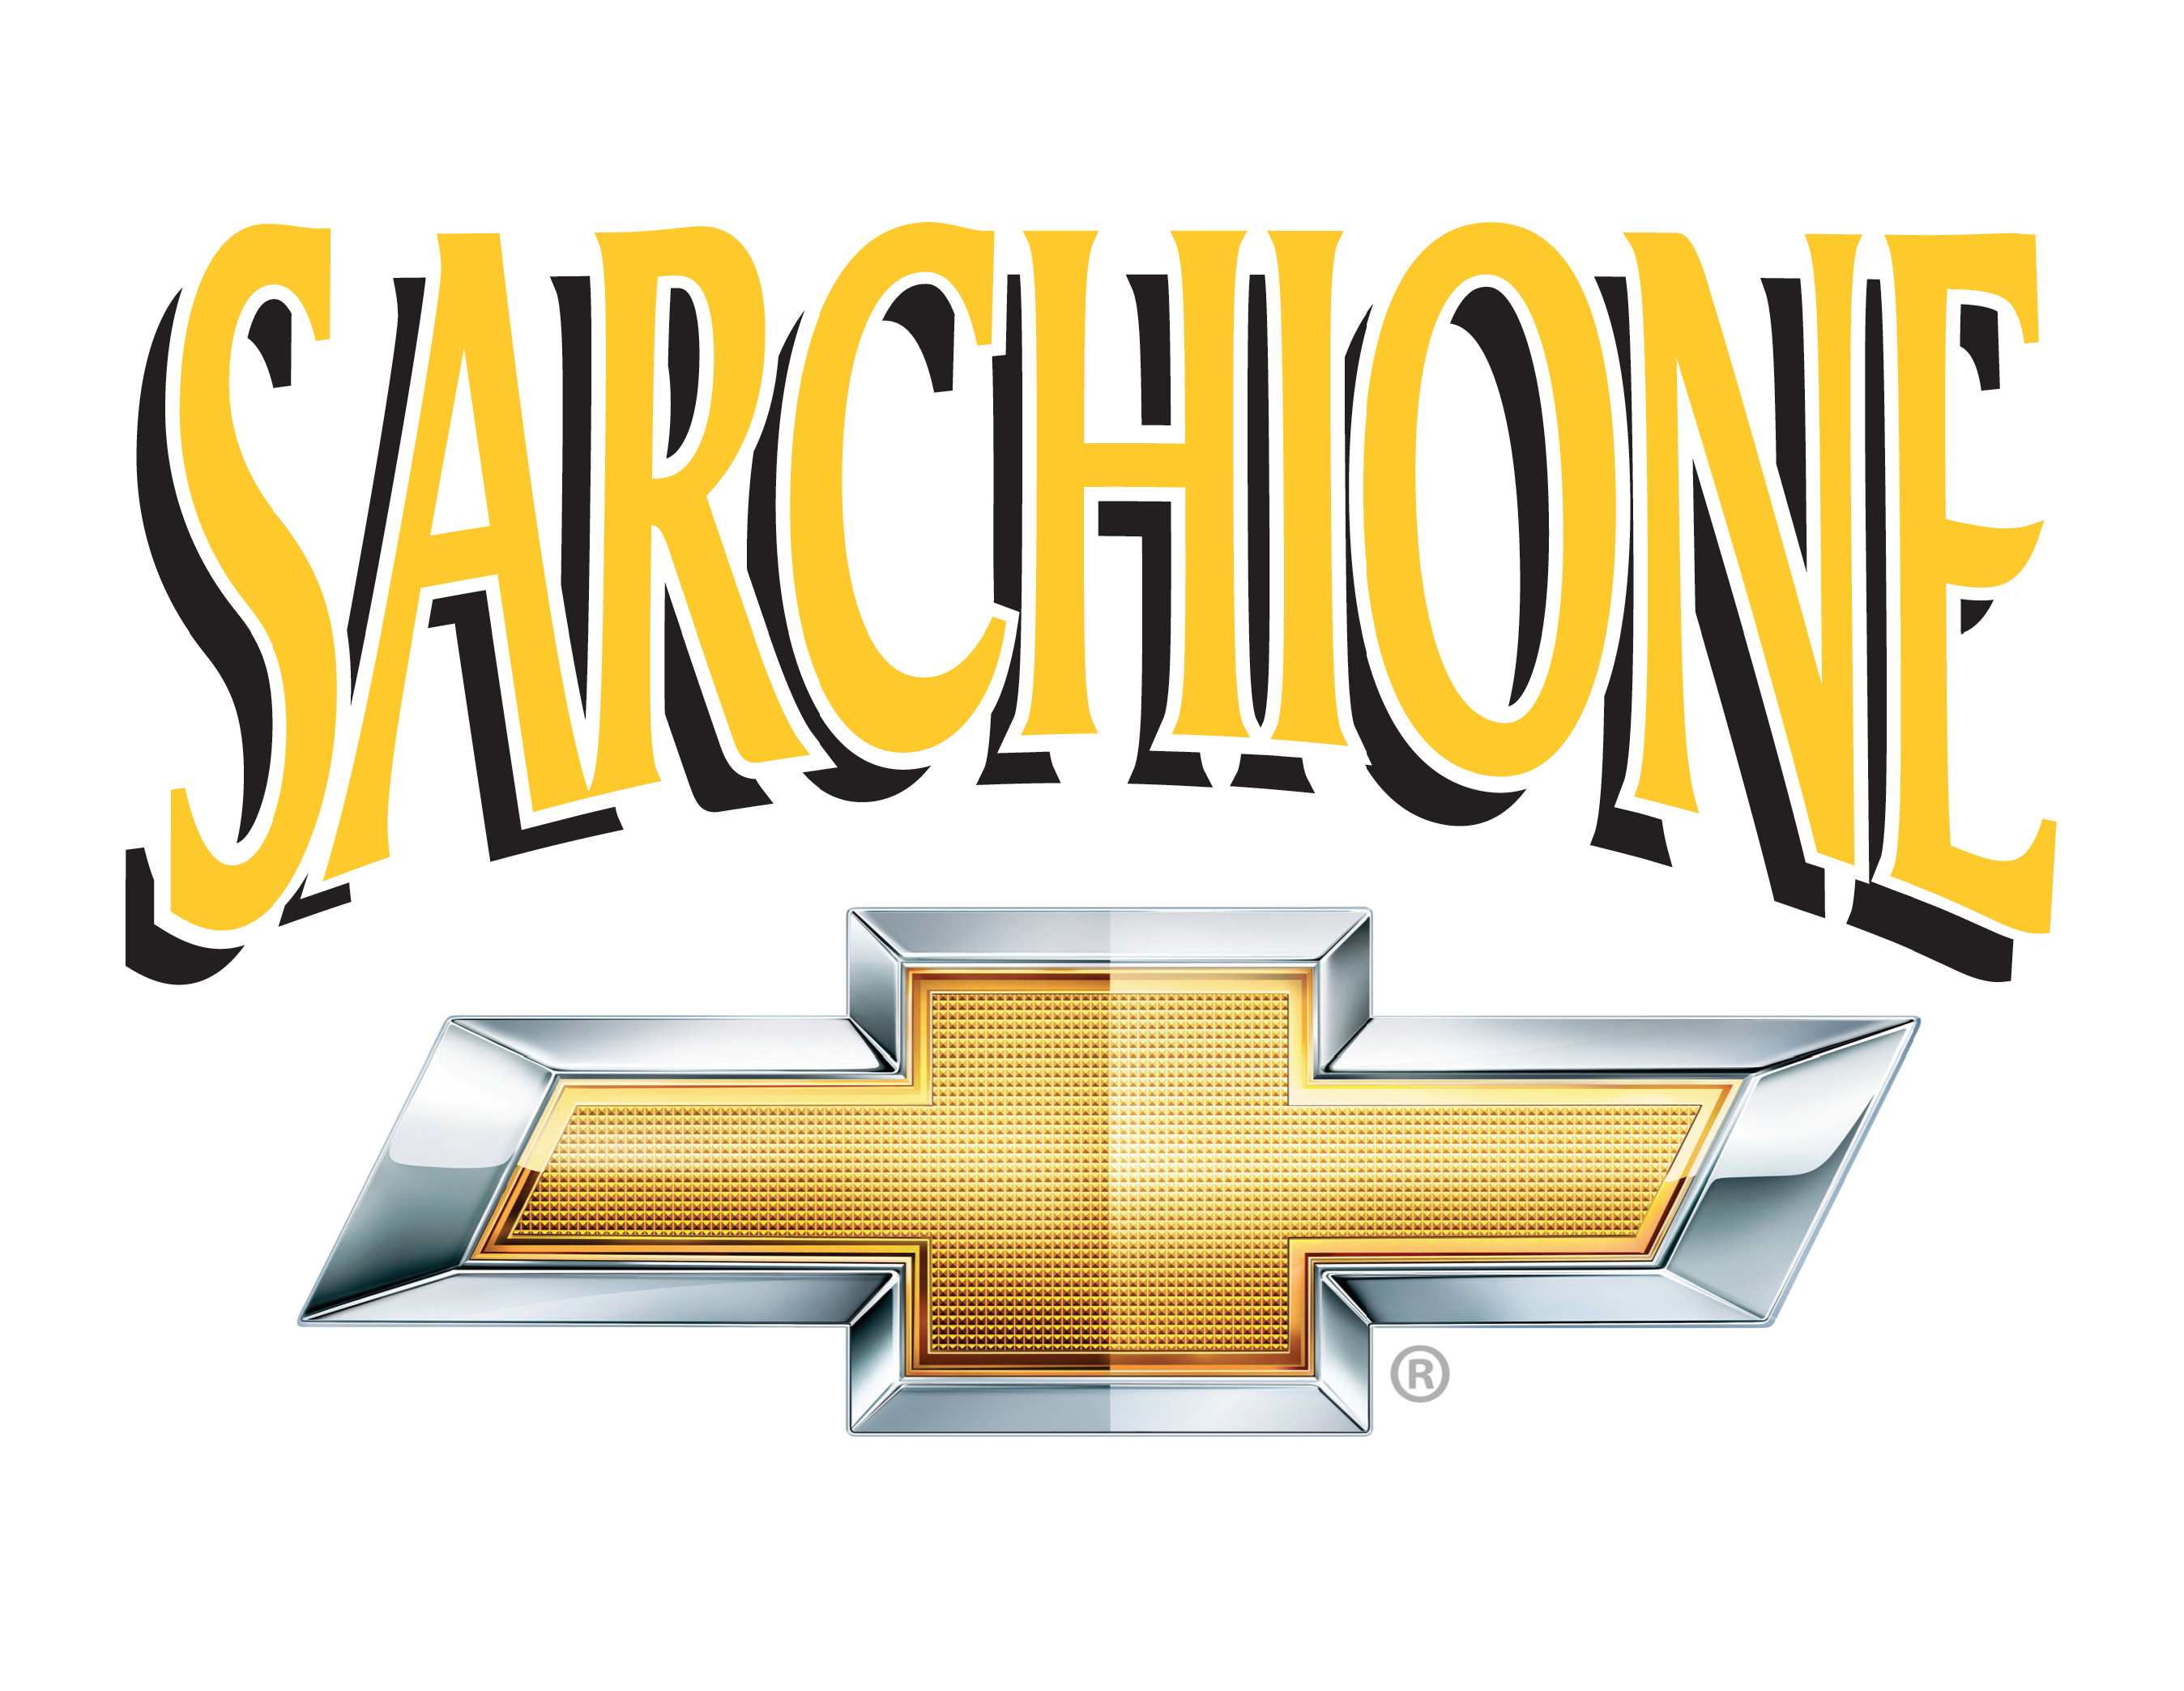 Sarchionechevyoval